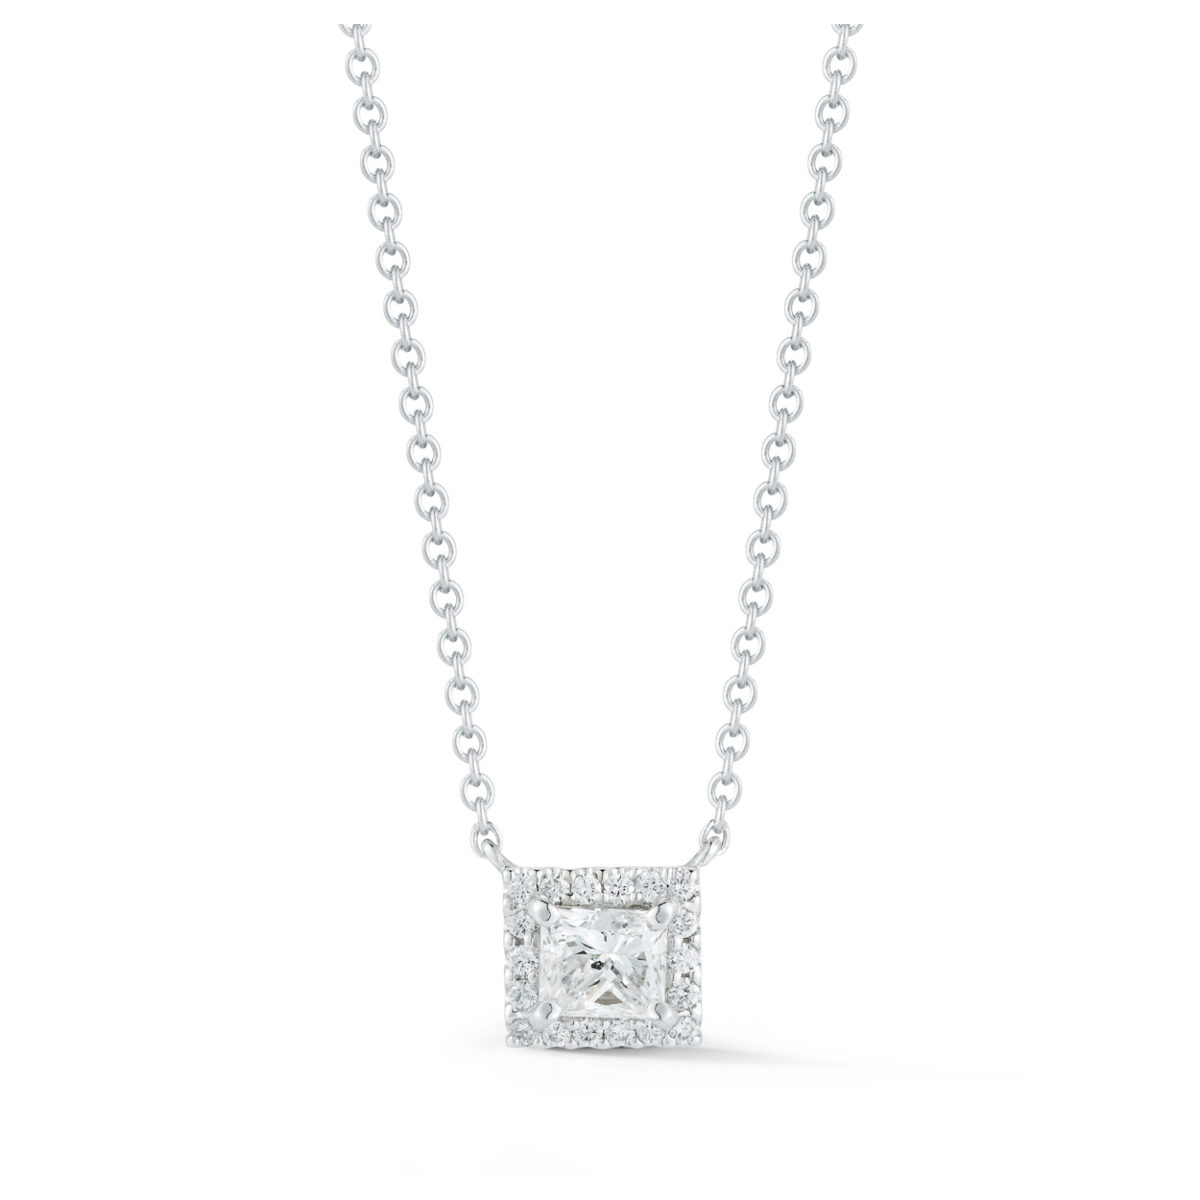 d necklace zo white cut yellow chicco horizontal gold diamond princess products